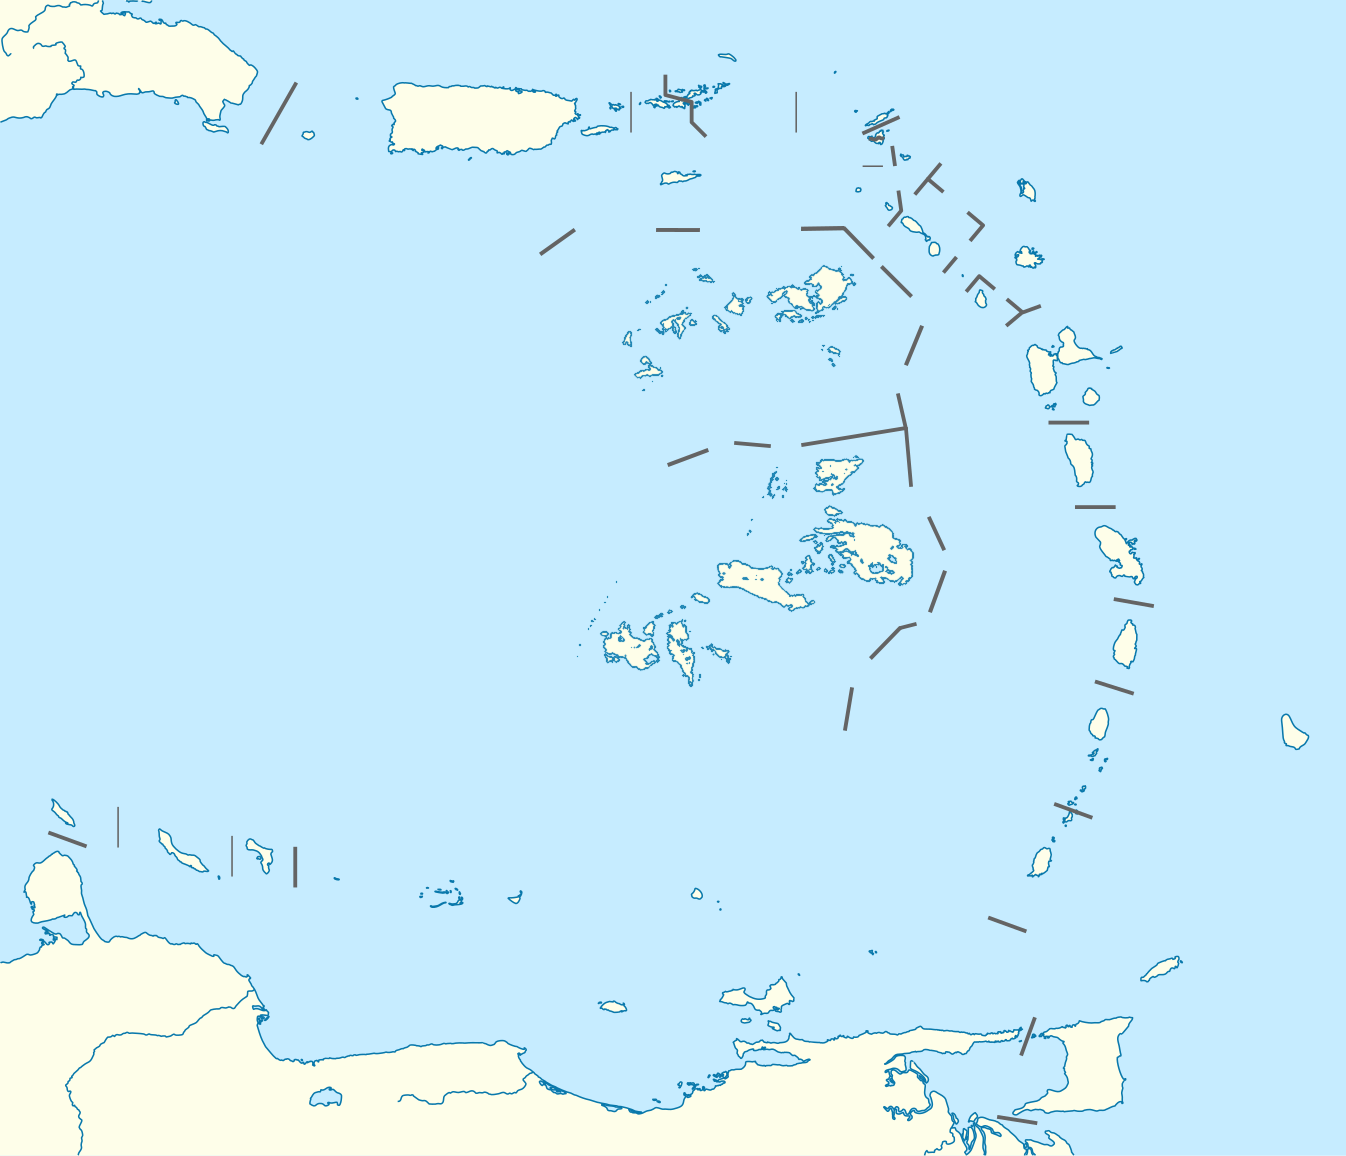 prundia_san_leon_and_the_lesser_antilles.png